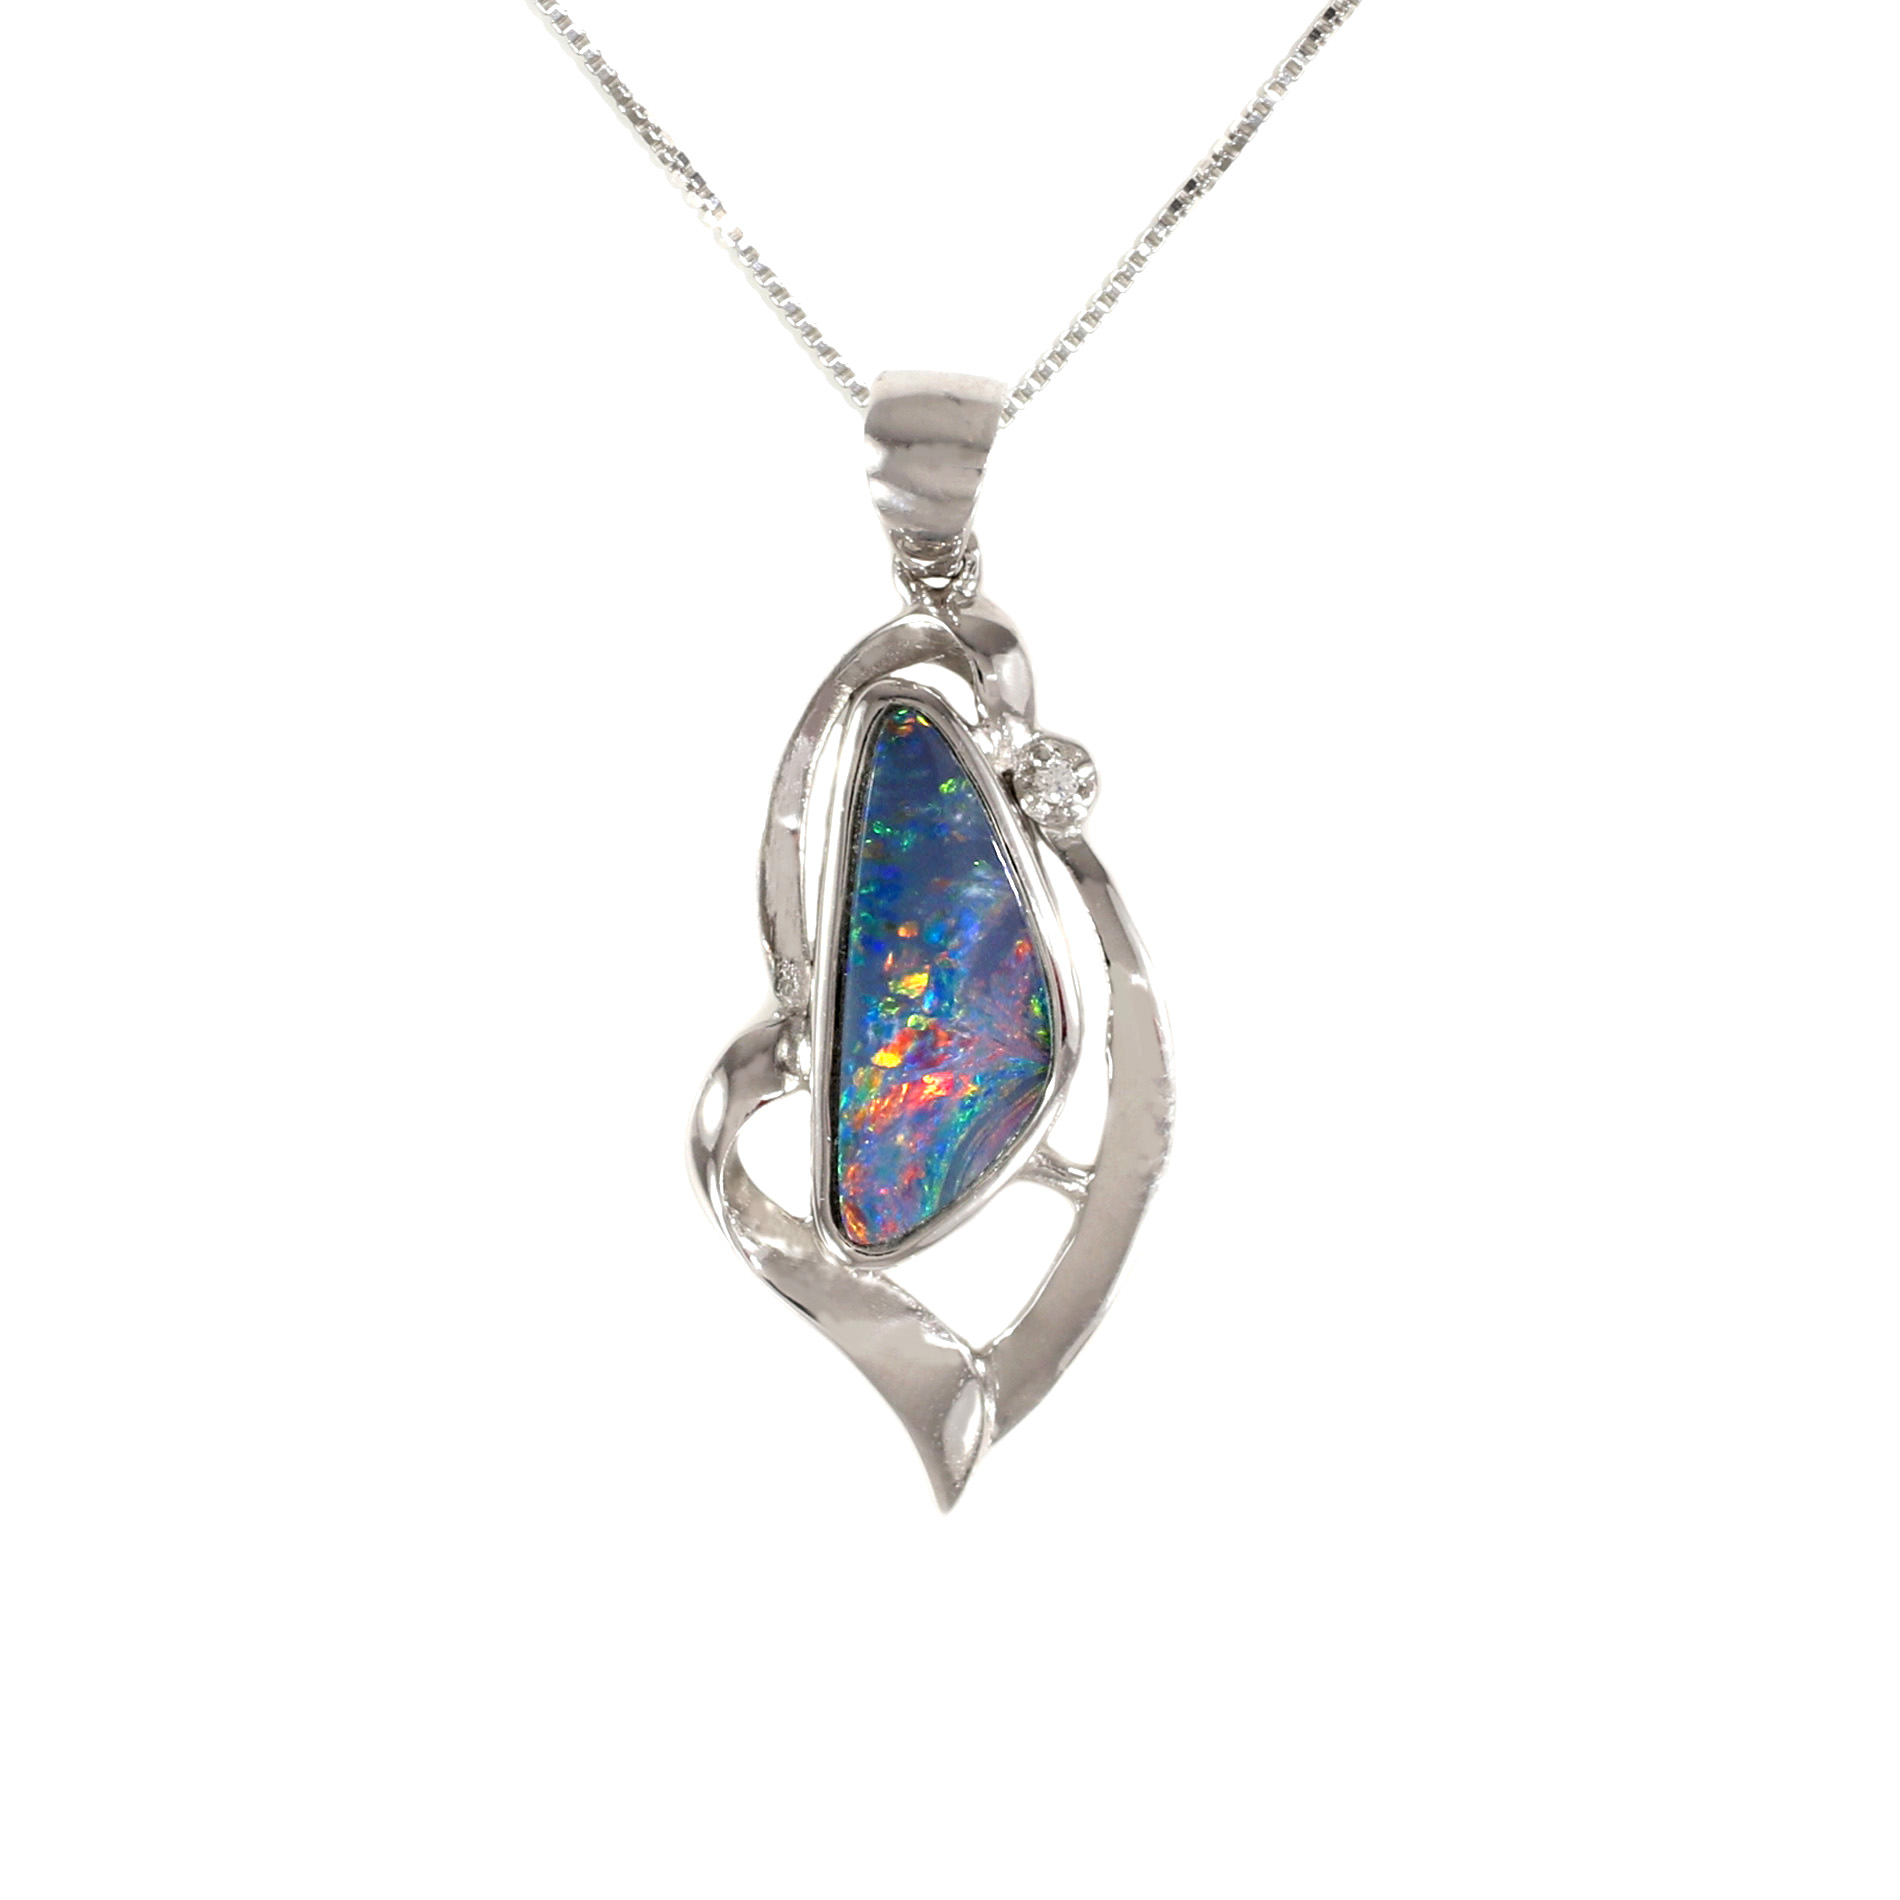 product for opal necklace gift mabella real lab blue fire mabellajewelry created shop sterling silver rakuten pendant women